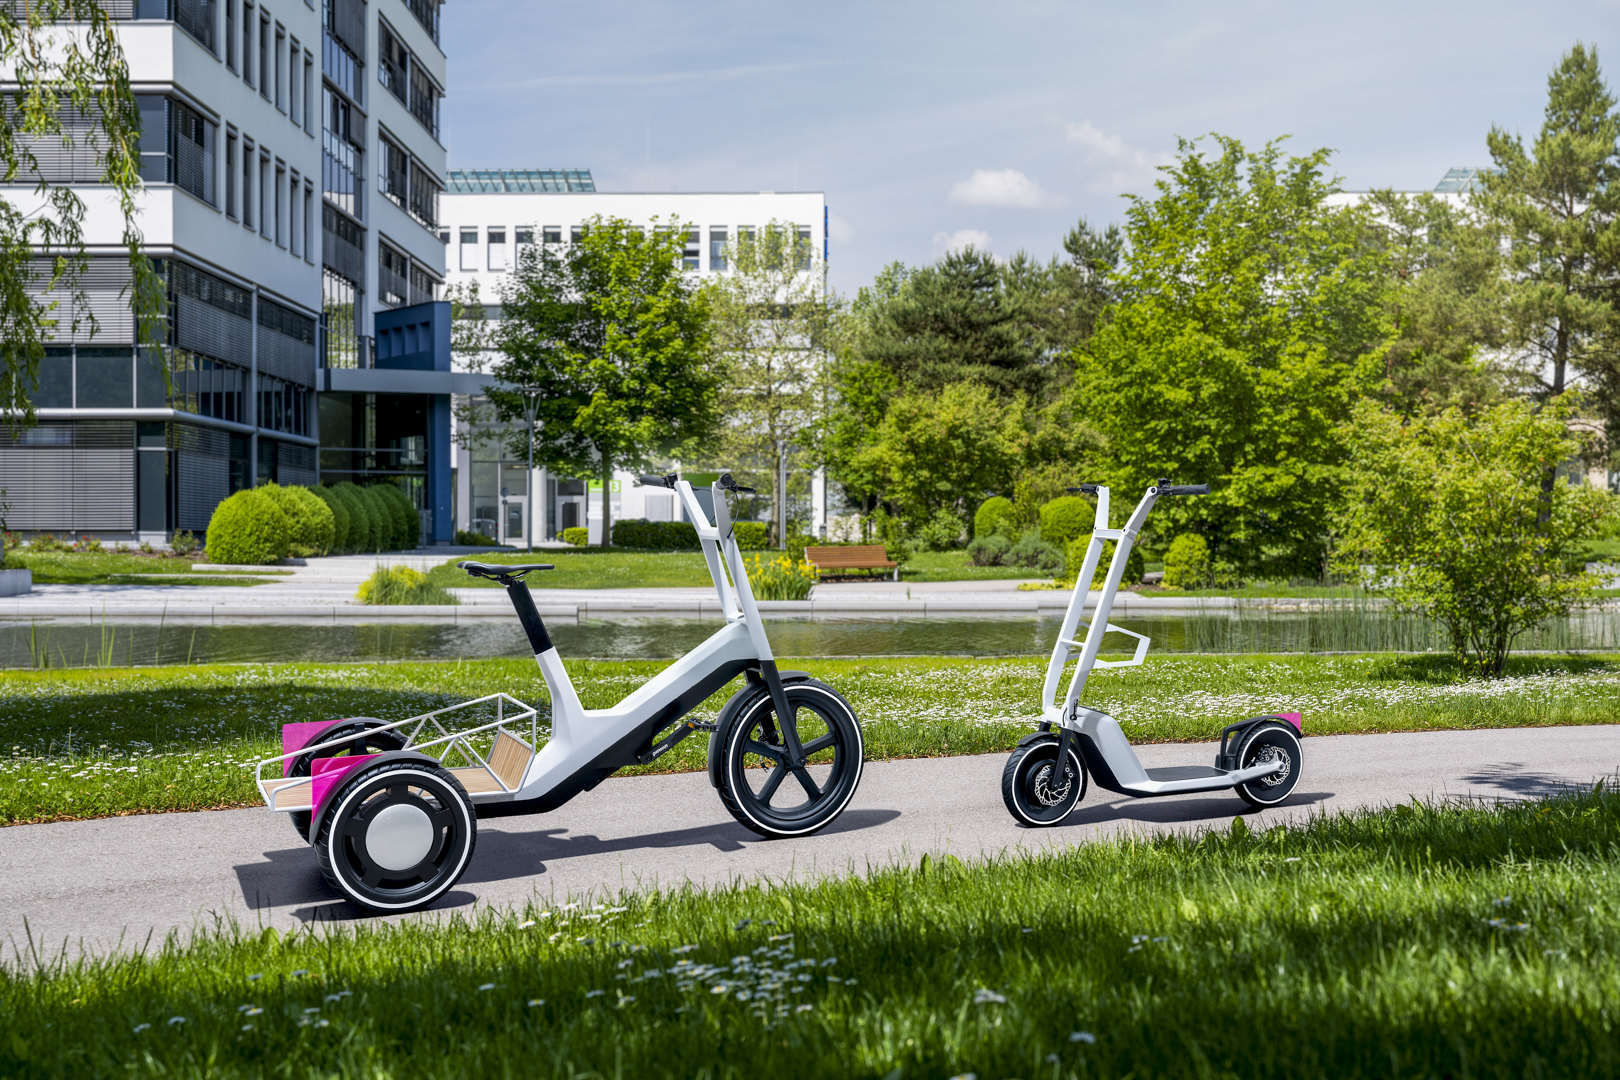 Stimulating ideas for urban mobility: BMW Group Research unveils innovative concepts for cargo bike and e-scooter